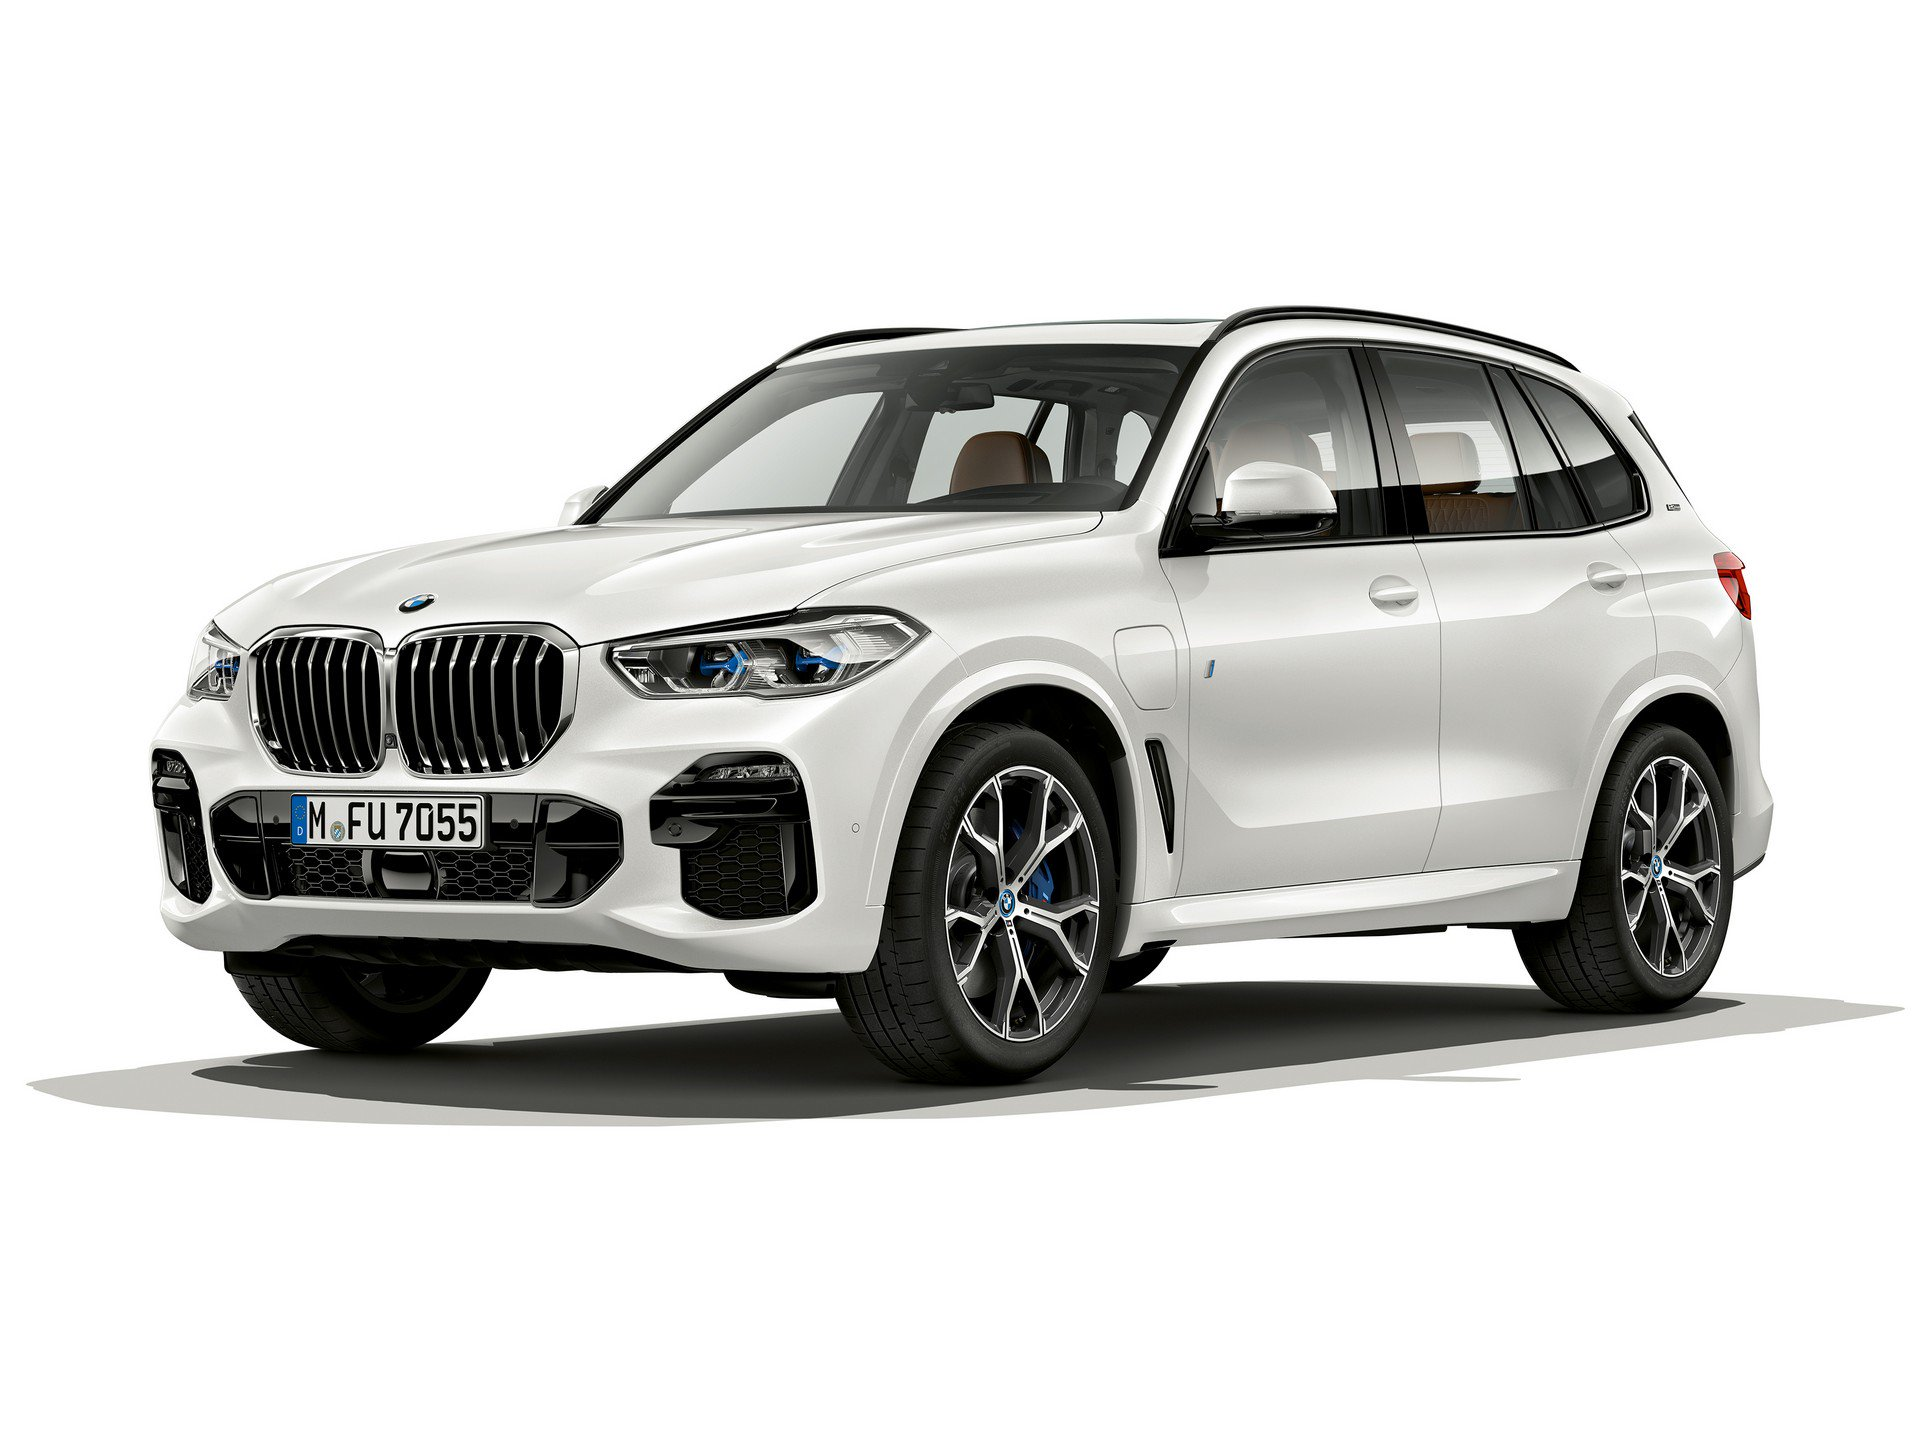 bmw-x5-xdrive45e-iperformance-1.jpg